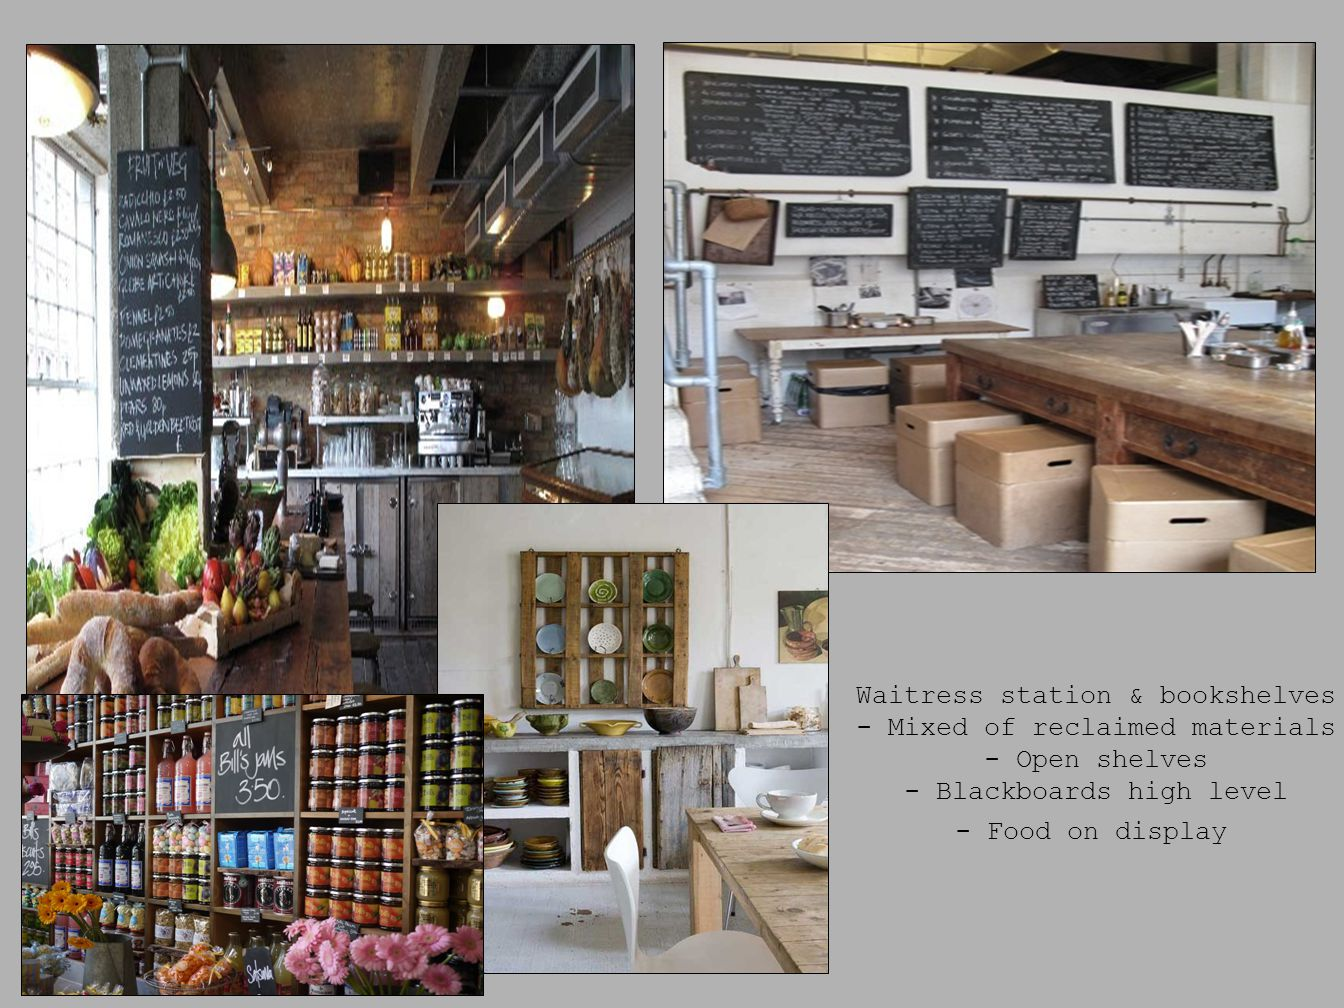 Waitress station & bookshelves - Mixed of reclaimed materials